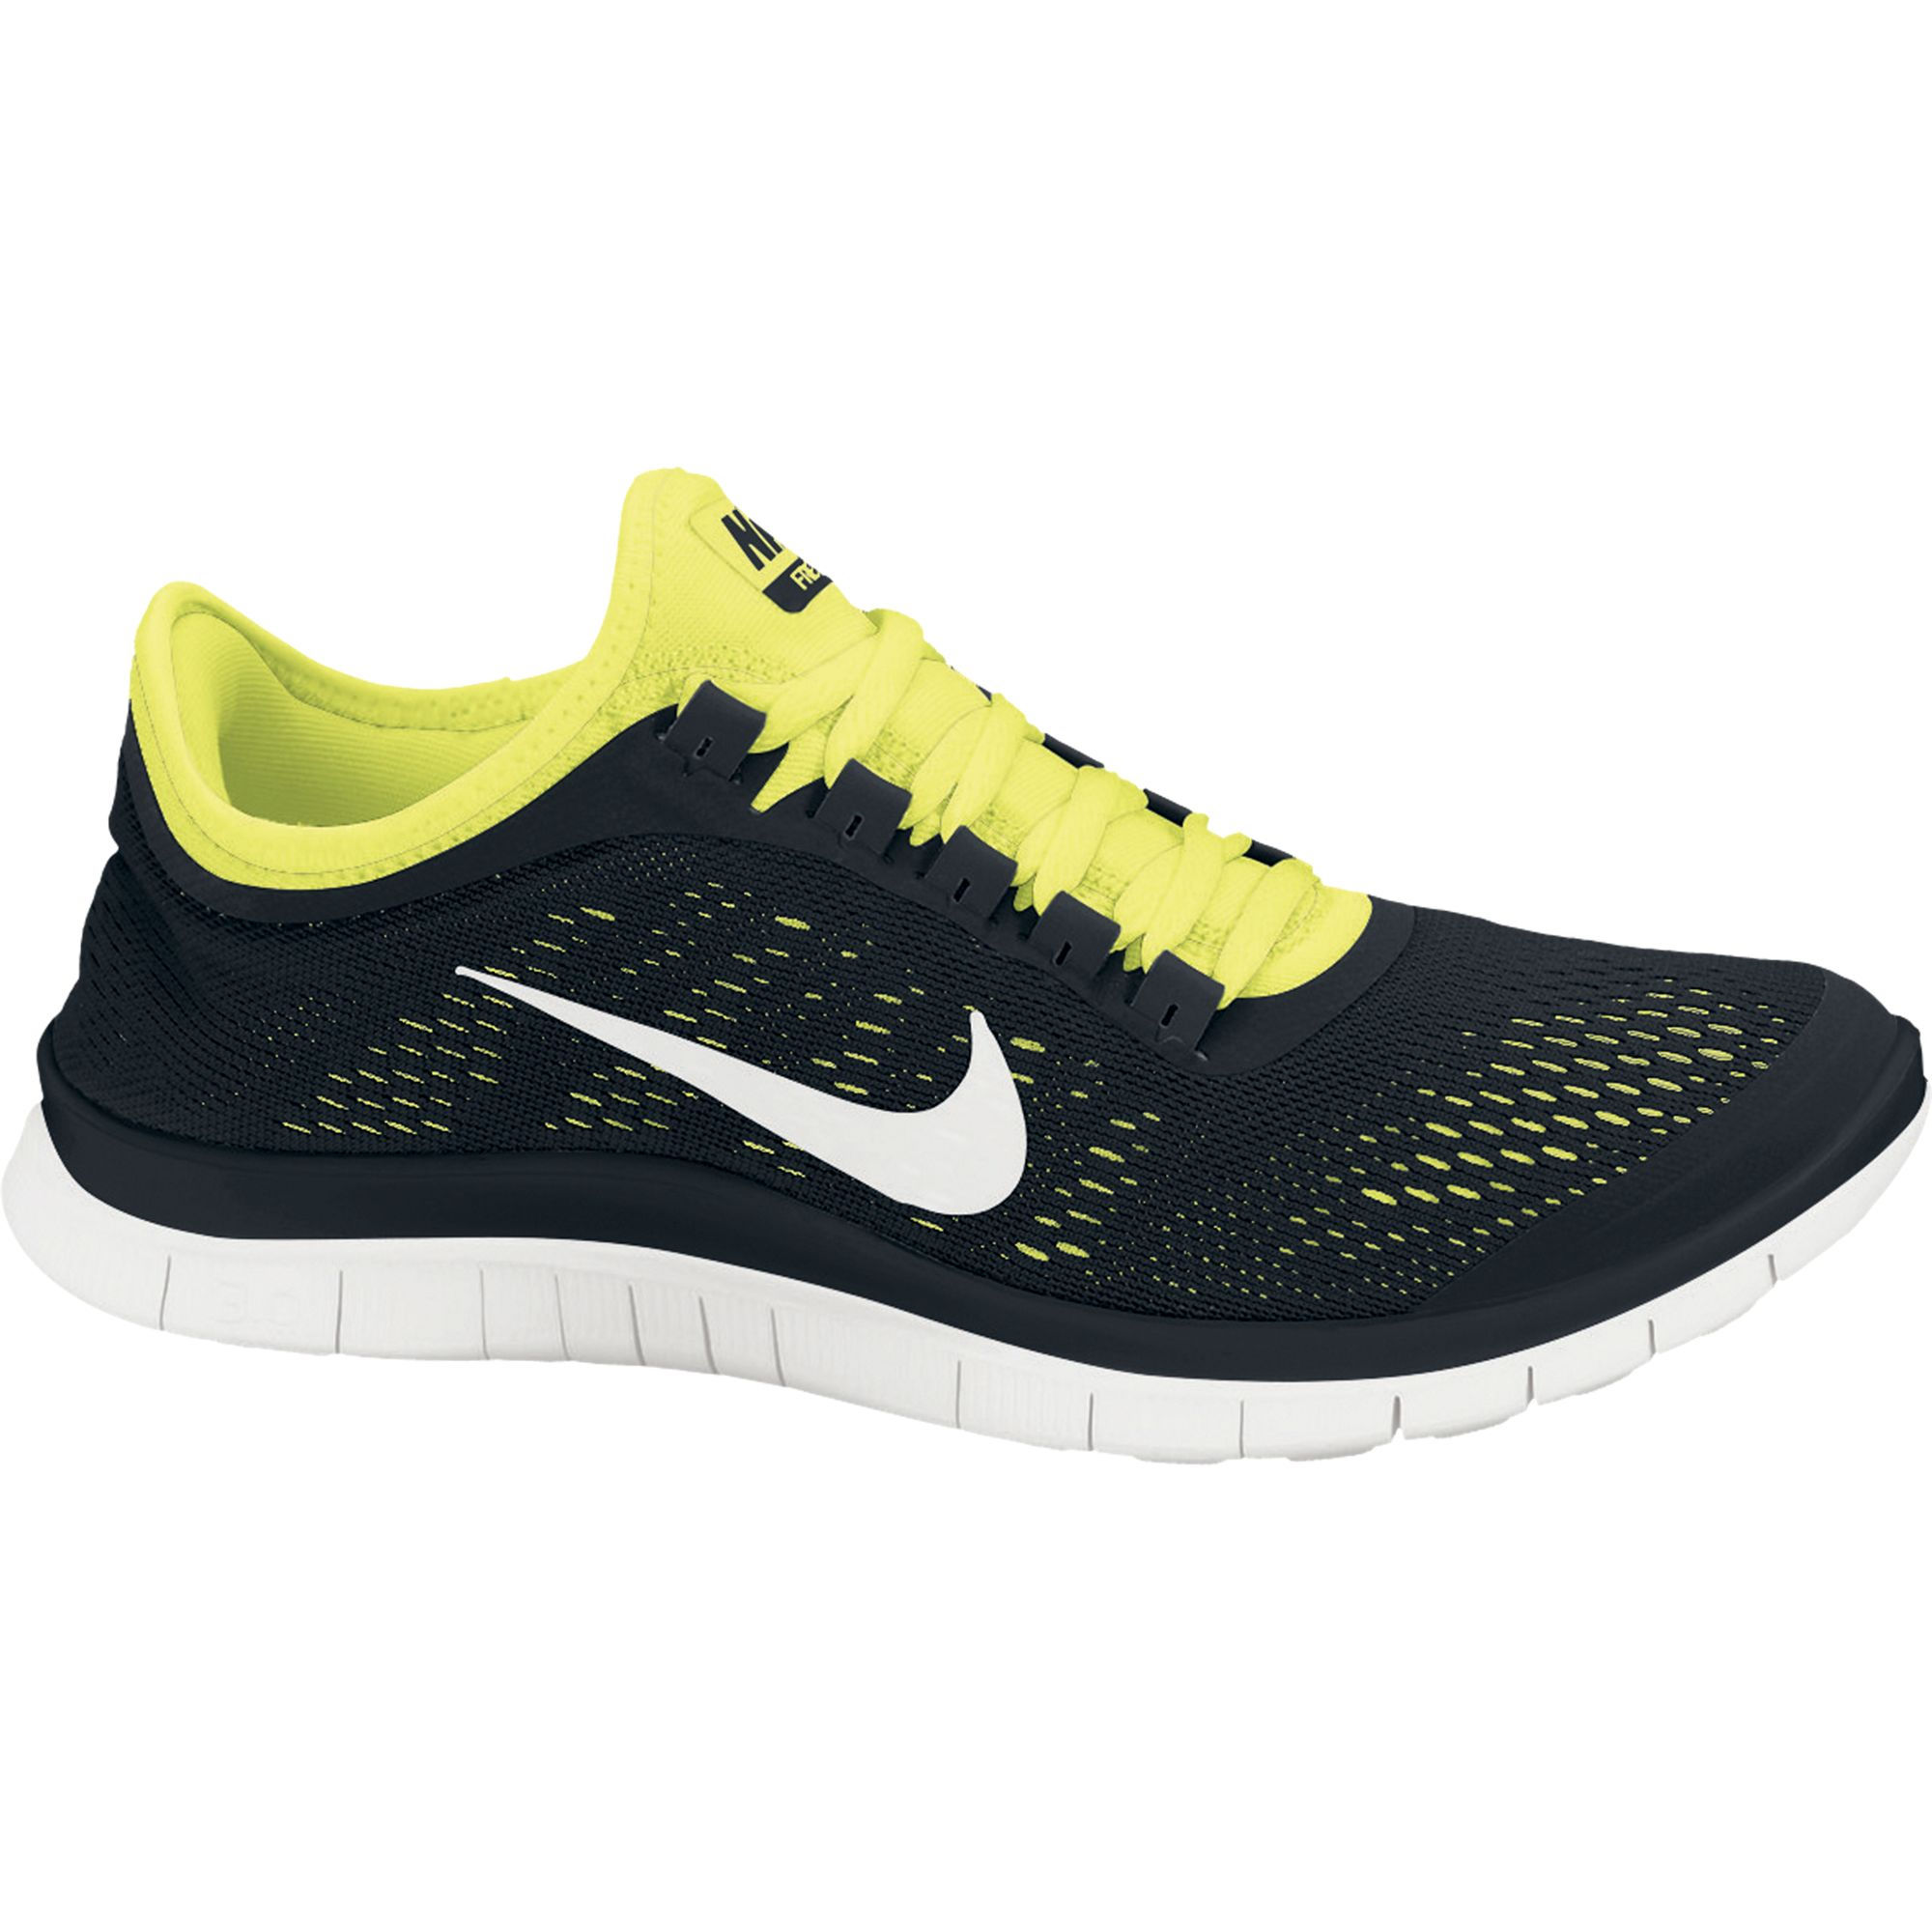 Cheap Nike Free Trainer 3.0 V3 Black/White